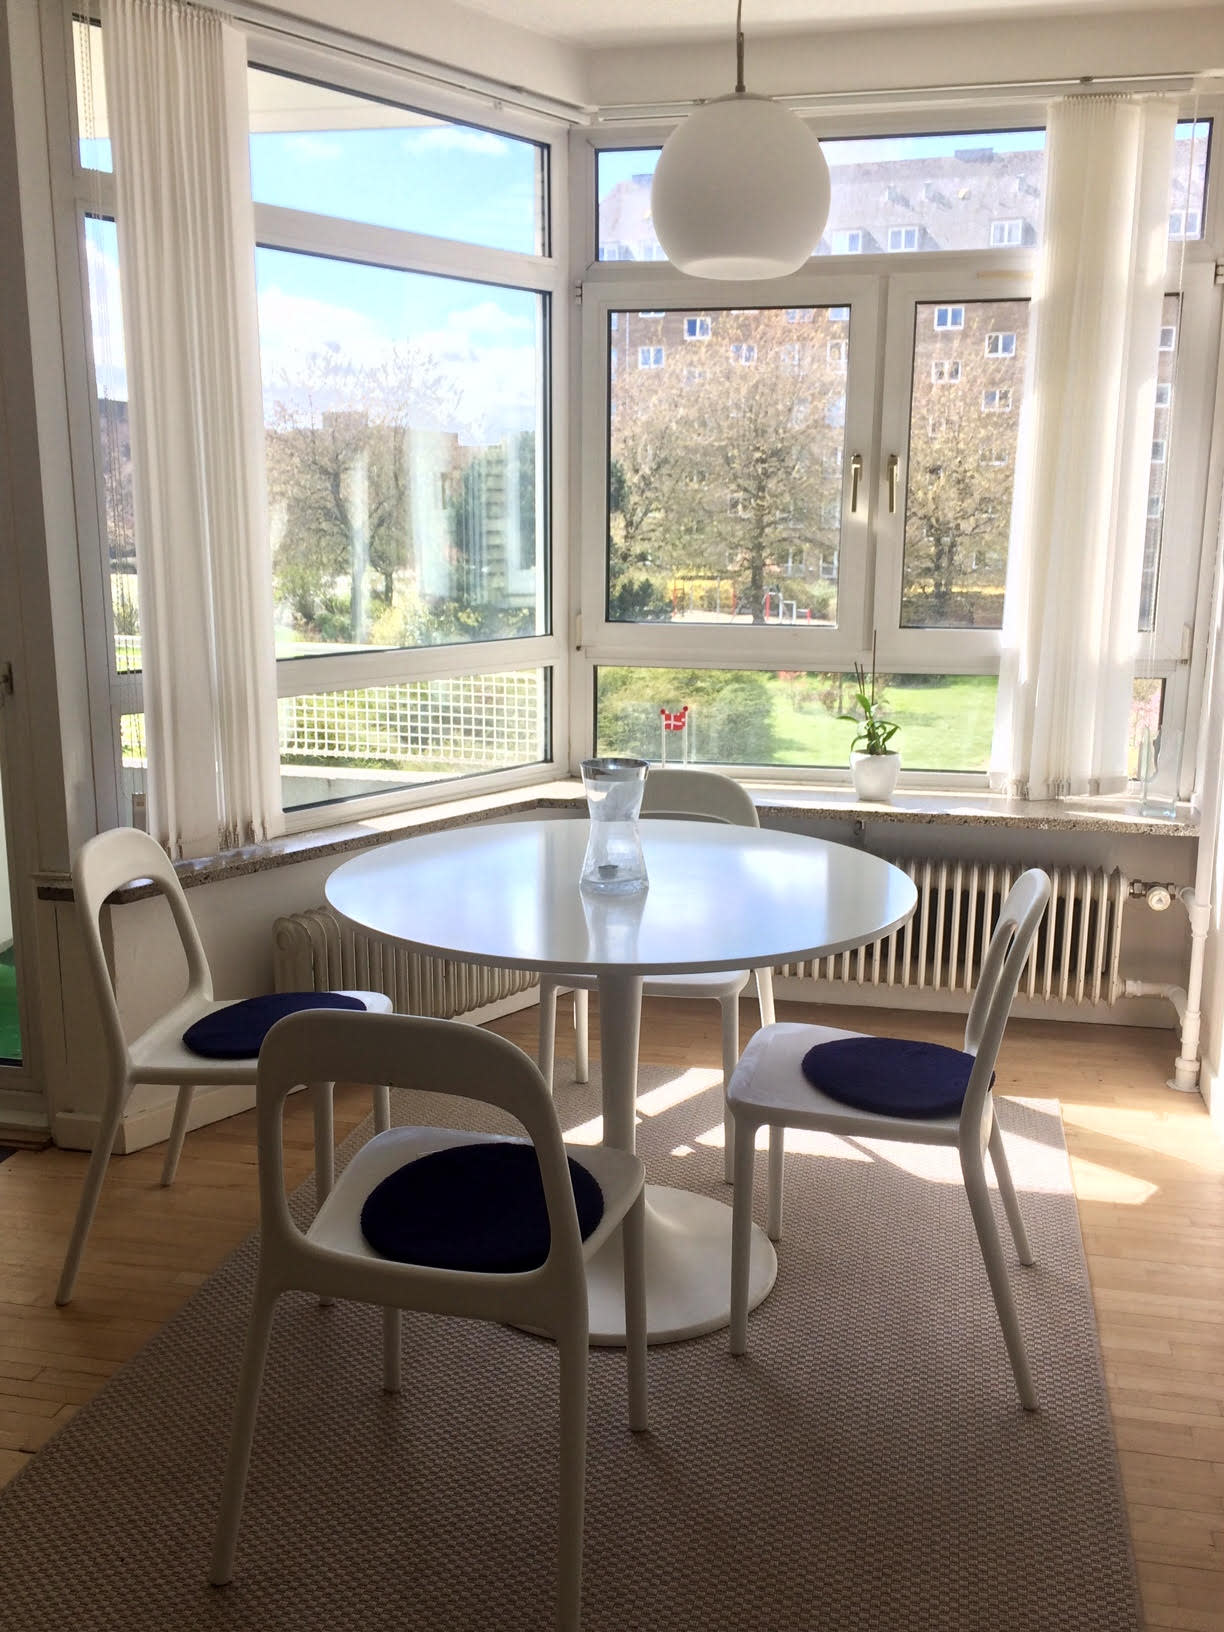 Room available at Frederiksberg